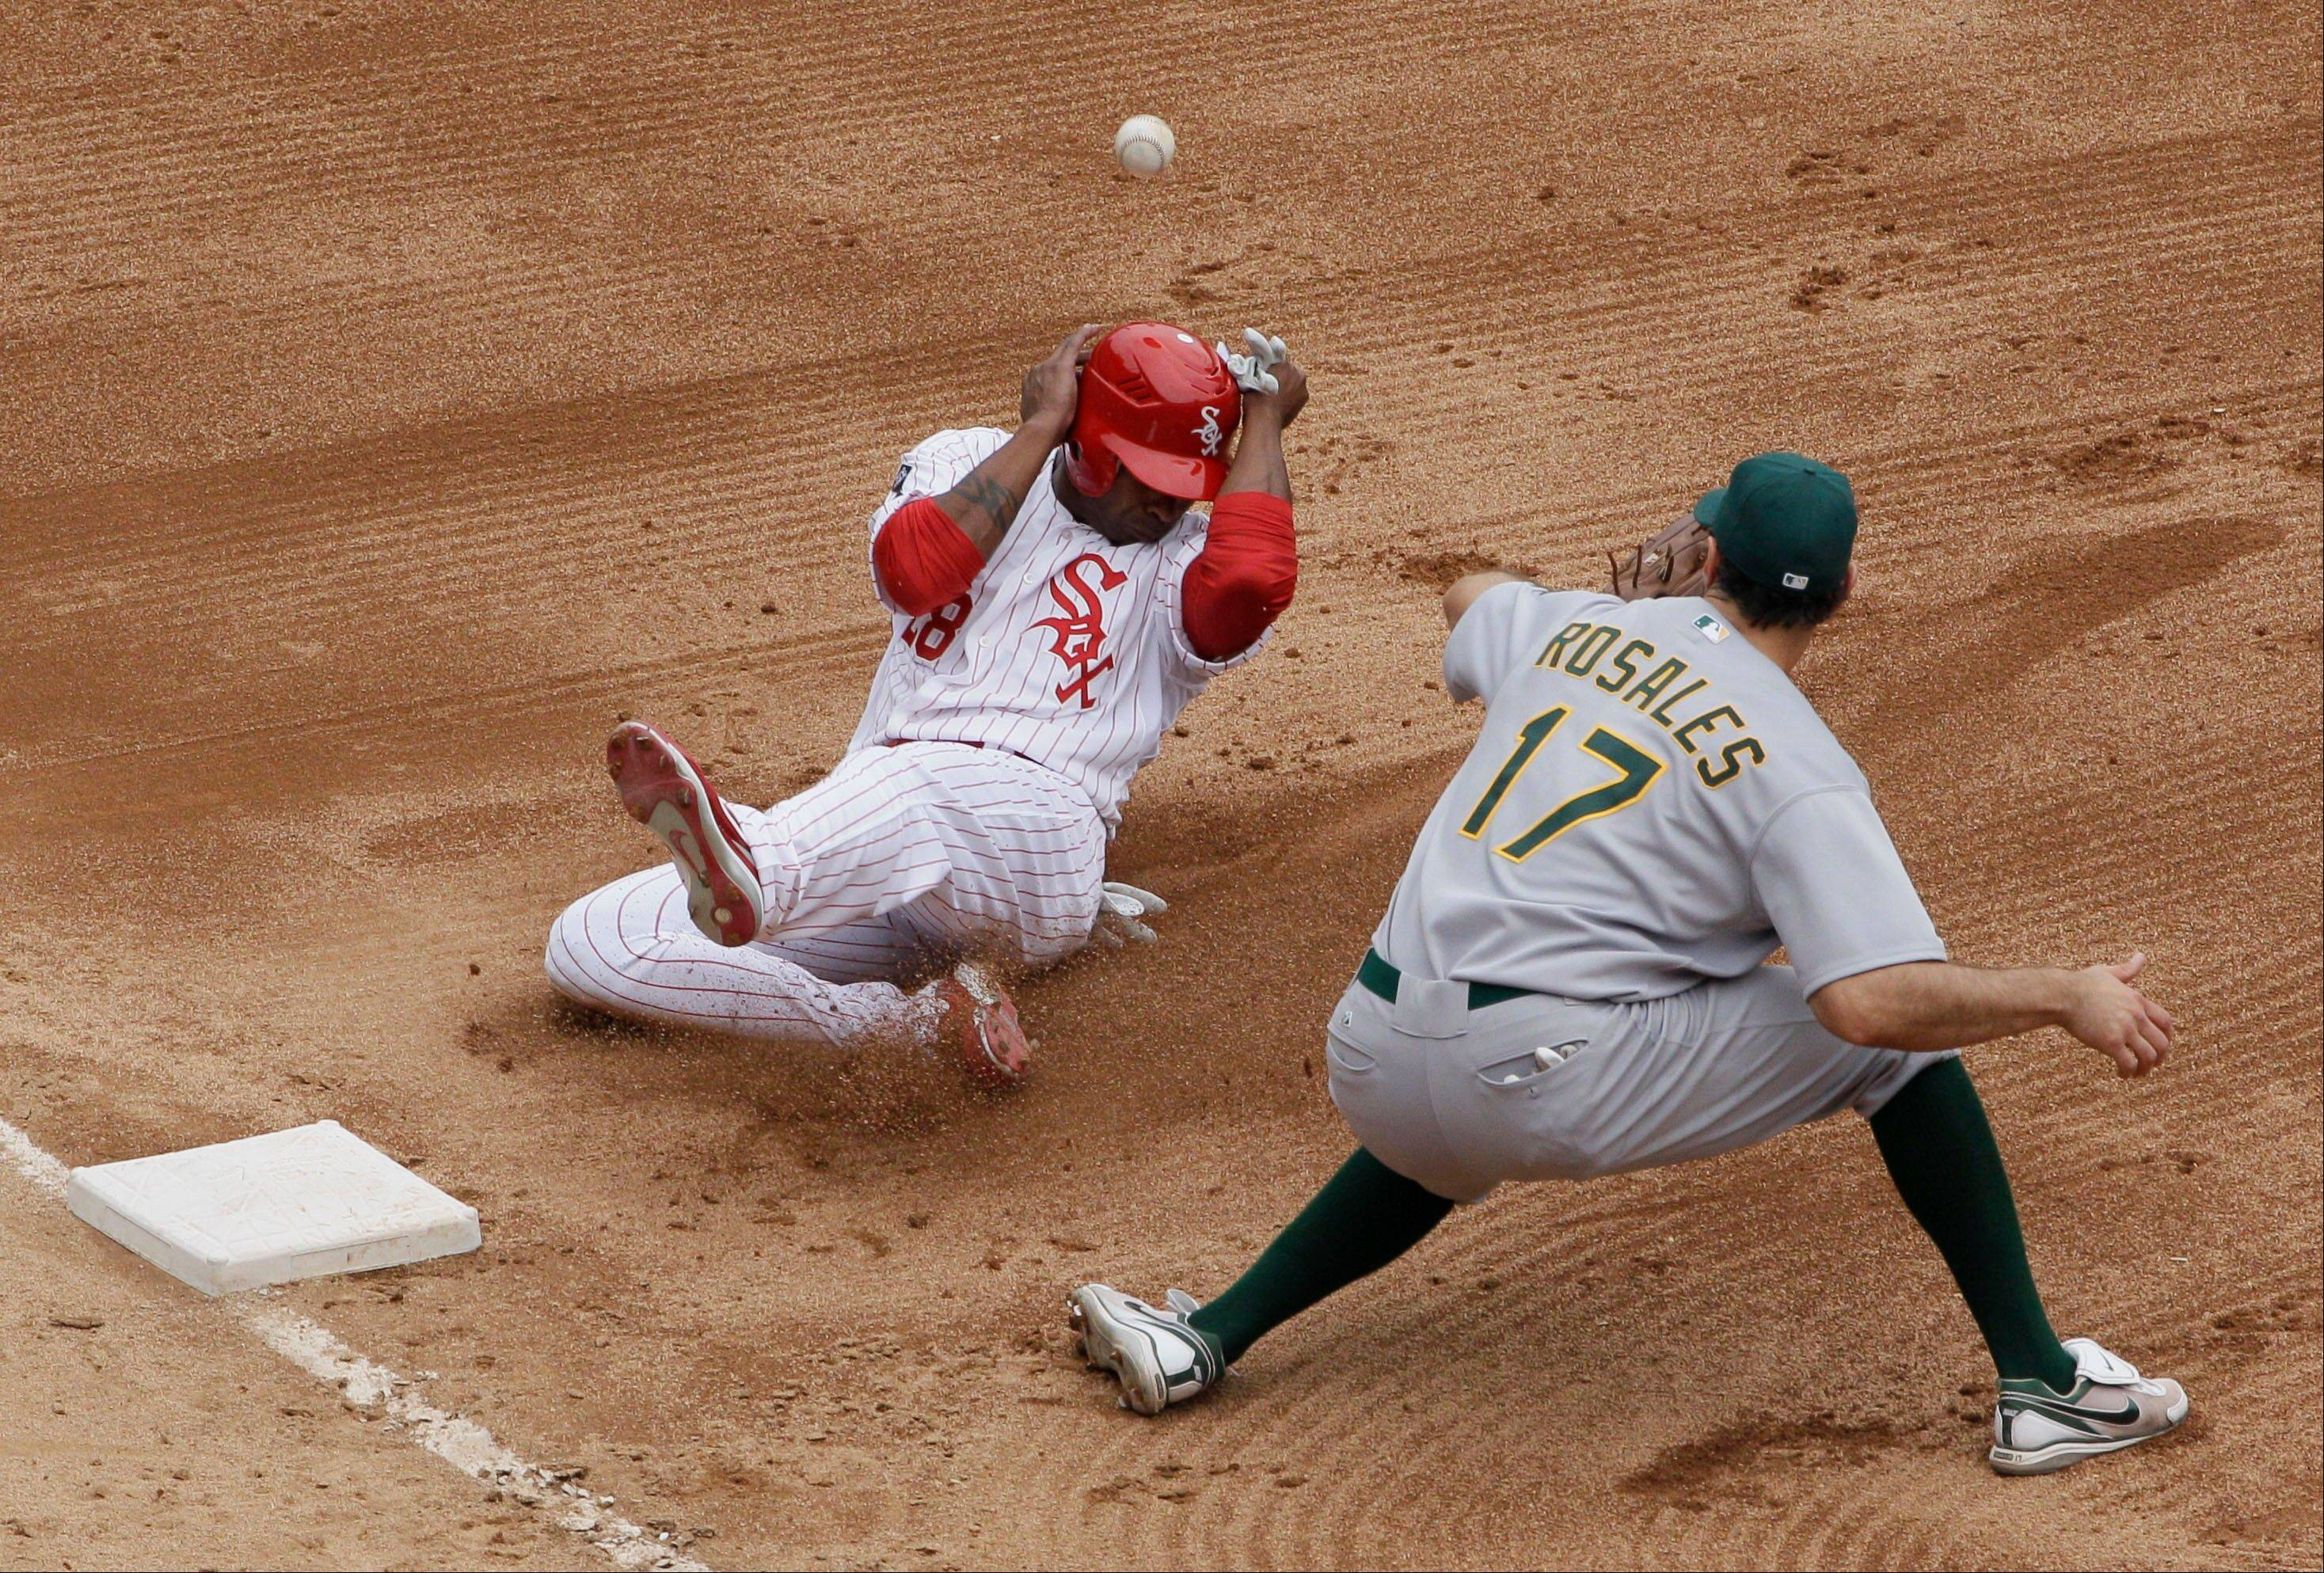 Dewayne Wise, left, is safe at third base as Oakland Athletics third baseman Adam Rosales waits for the ball during the sixth inning of a baseball game in Chicago, Sunday, Aug. 12, 2012.